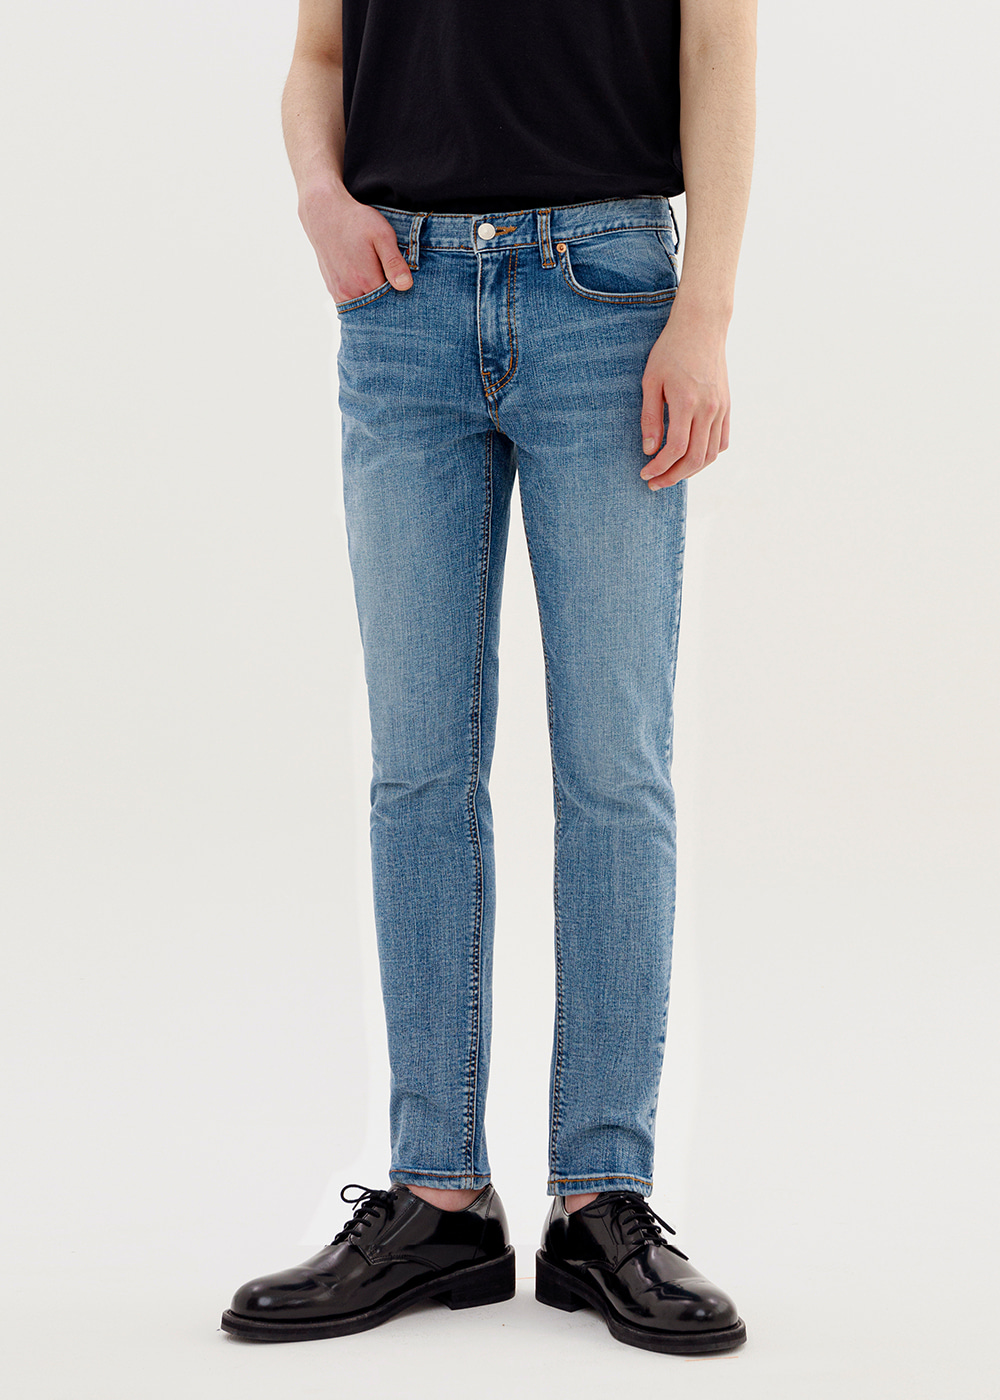 CROP JEANS IA [MID BLUE]